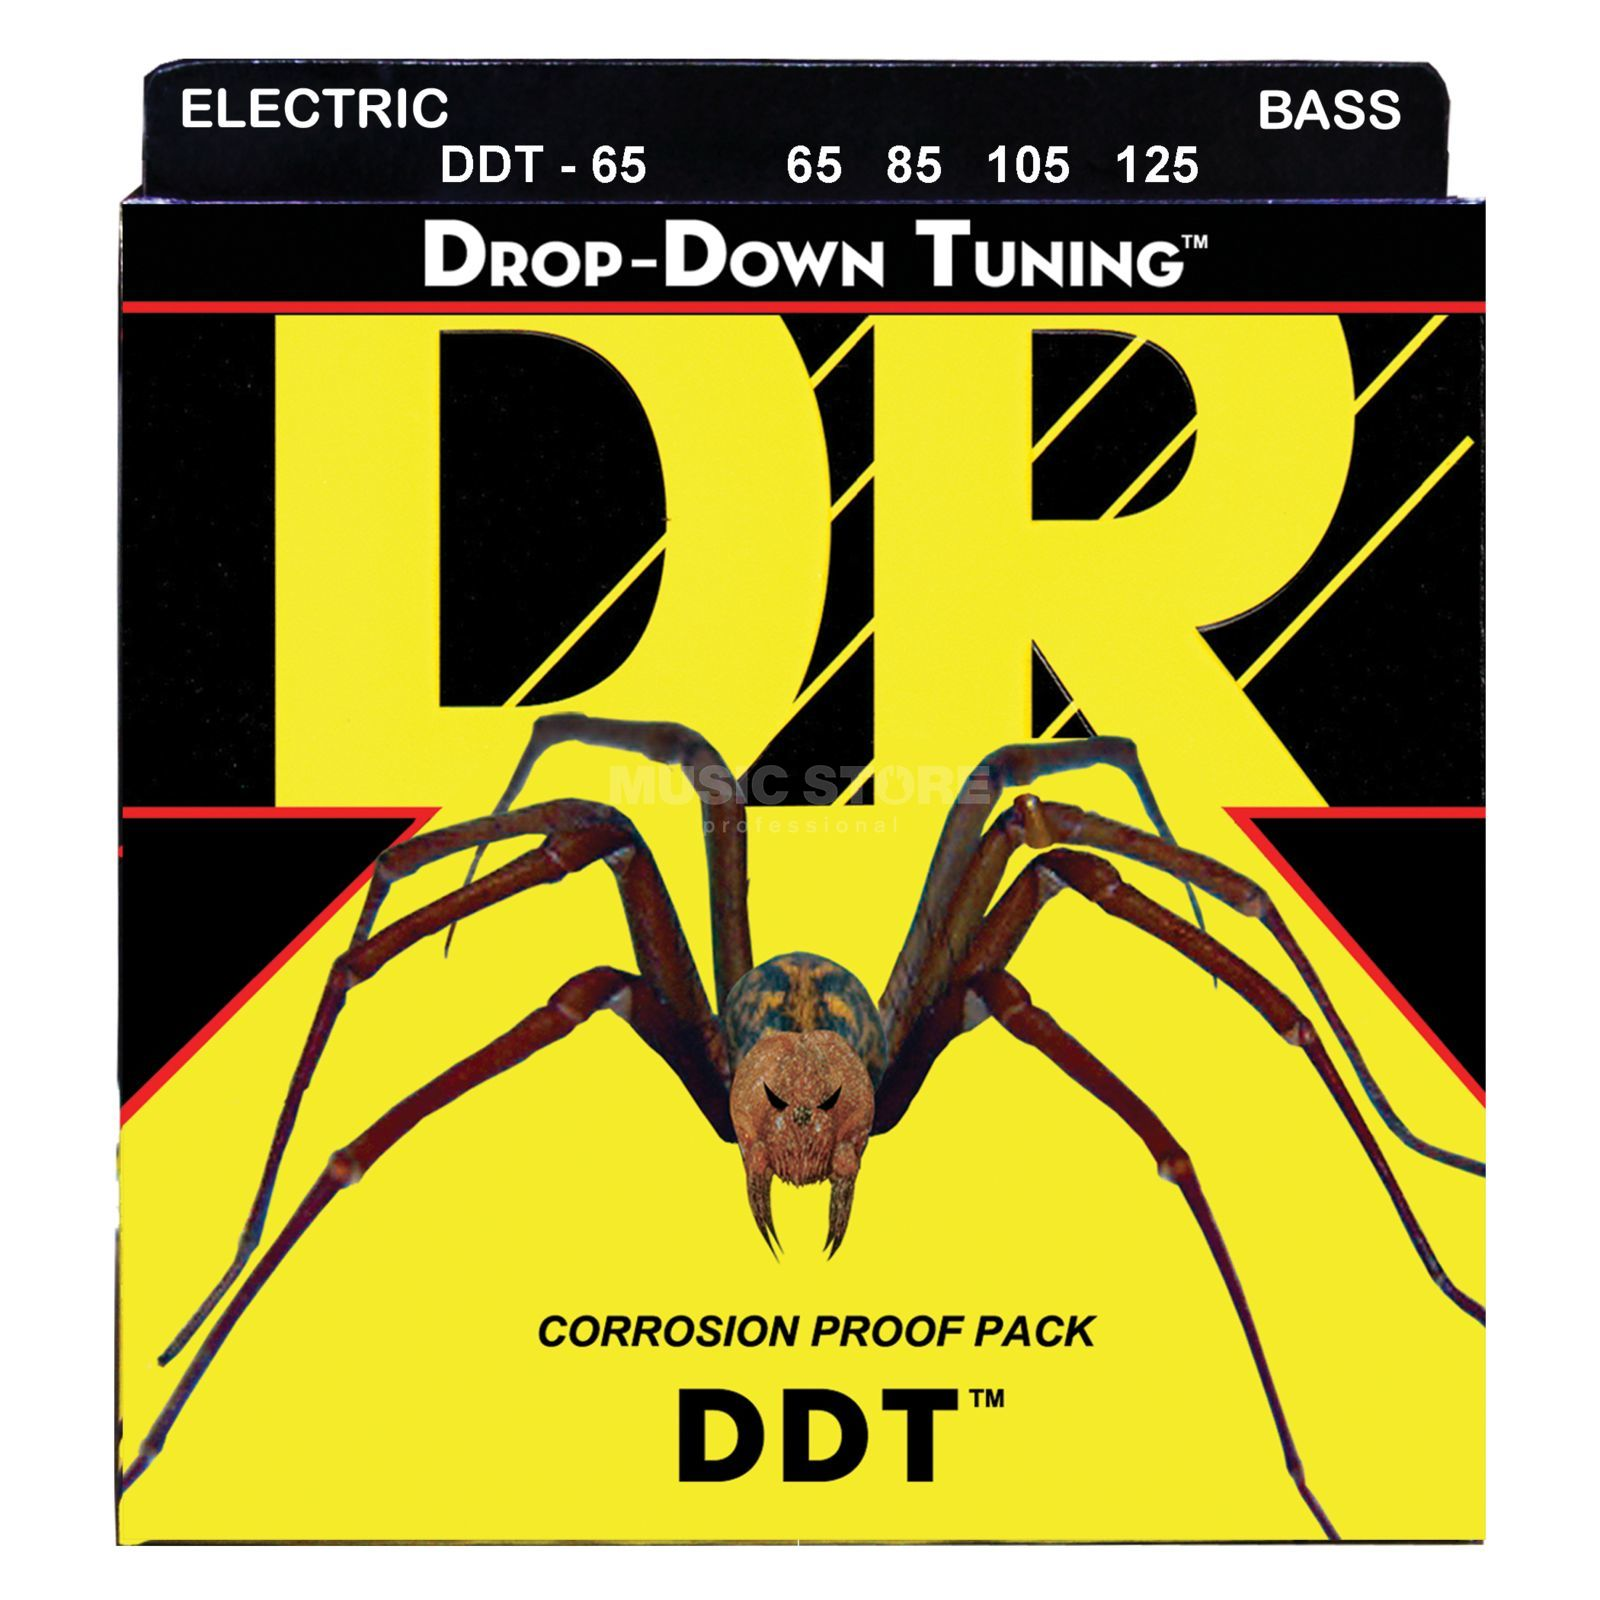 DR 4er Bass 65-125 Drop-Down Tuning DDT-65 Produktbild